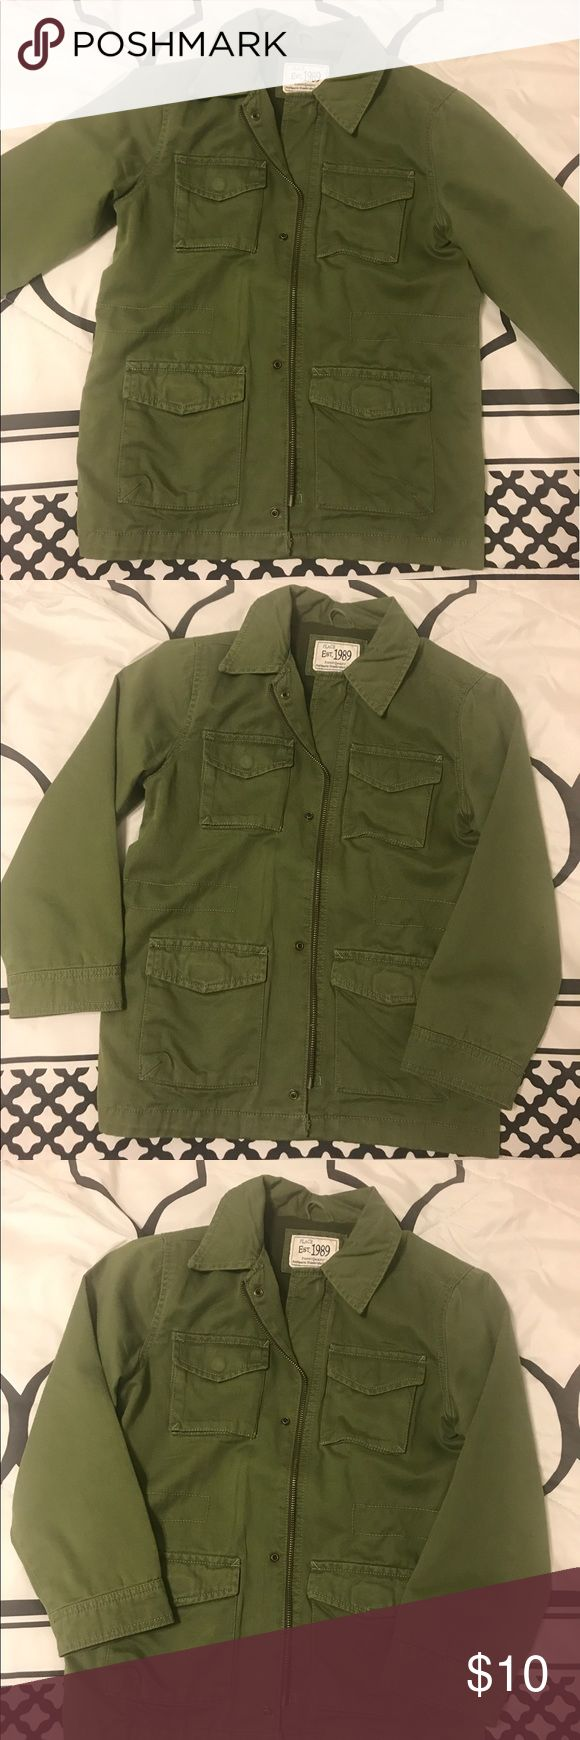 Green utility jacket ! Purchased from the children's place in the boys section but fits a small in women's Children's Place Jackets & Coats